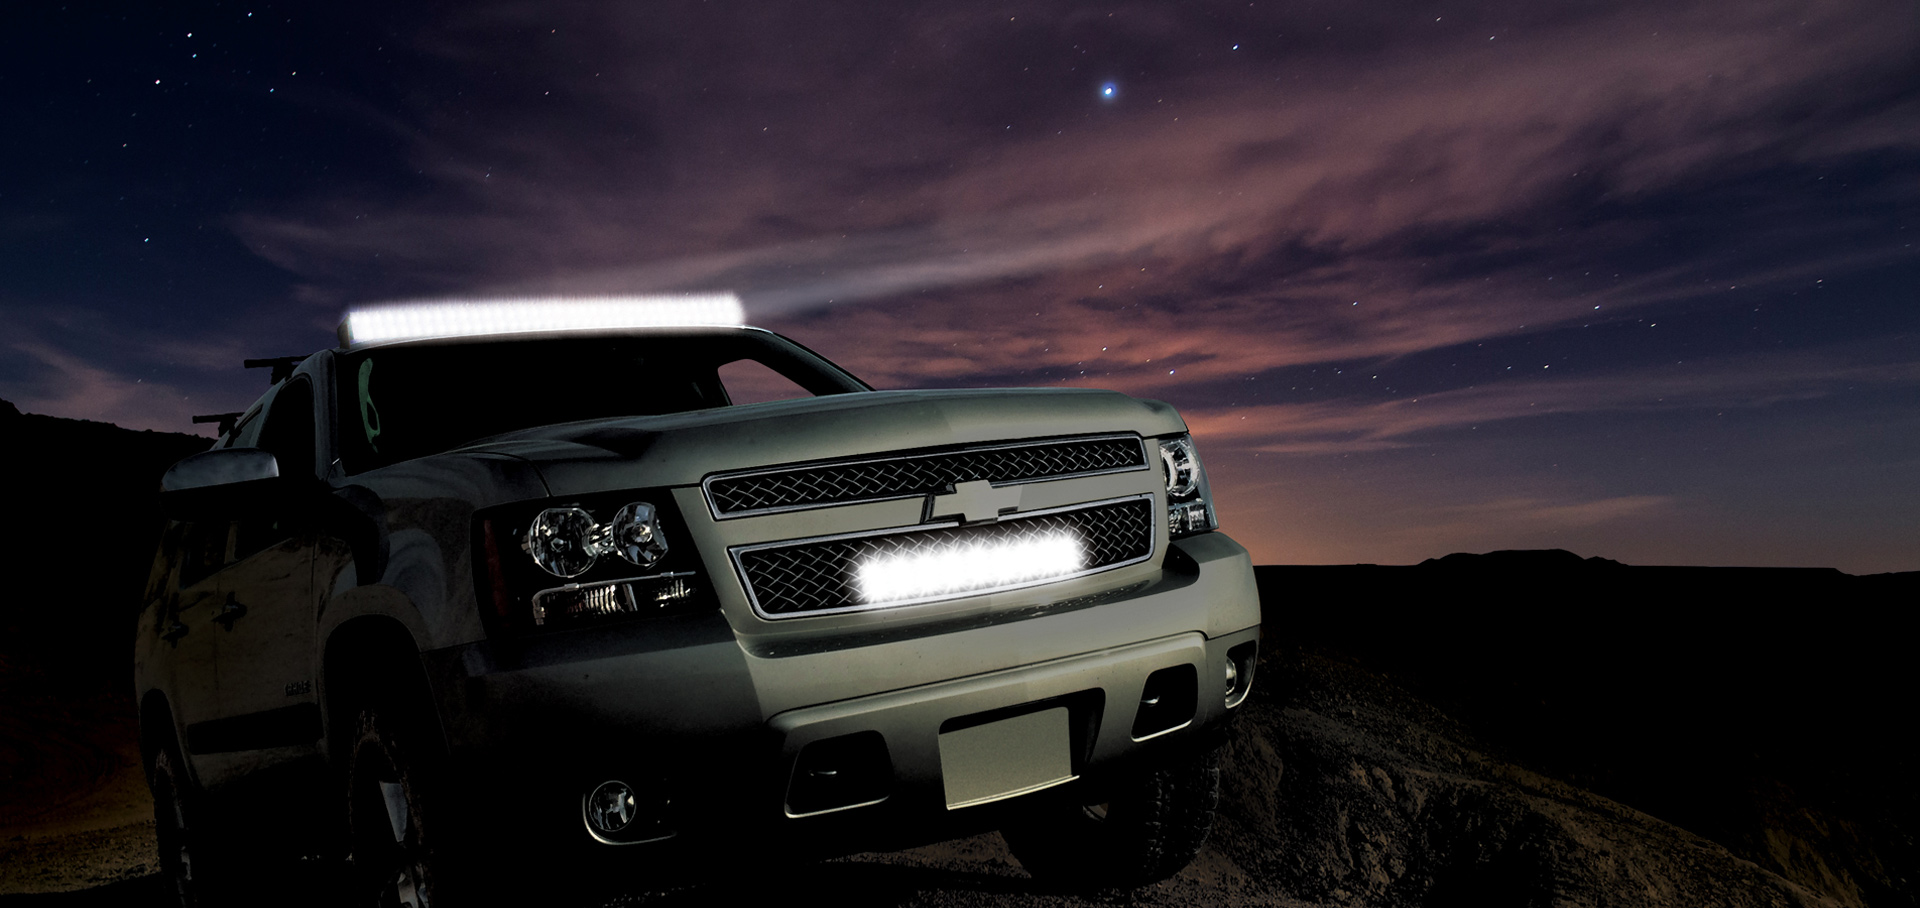 Cyclops LED Bar Light shining into the night sky attached above SUV windshield